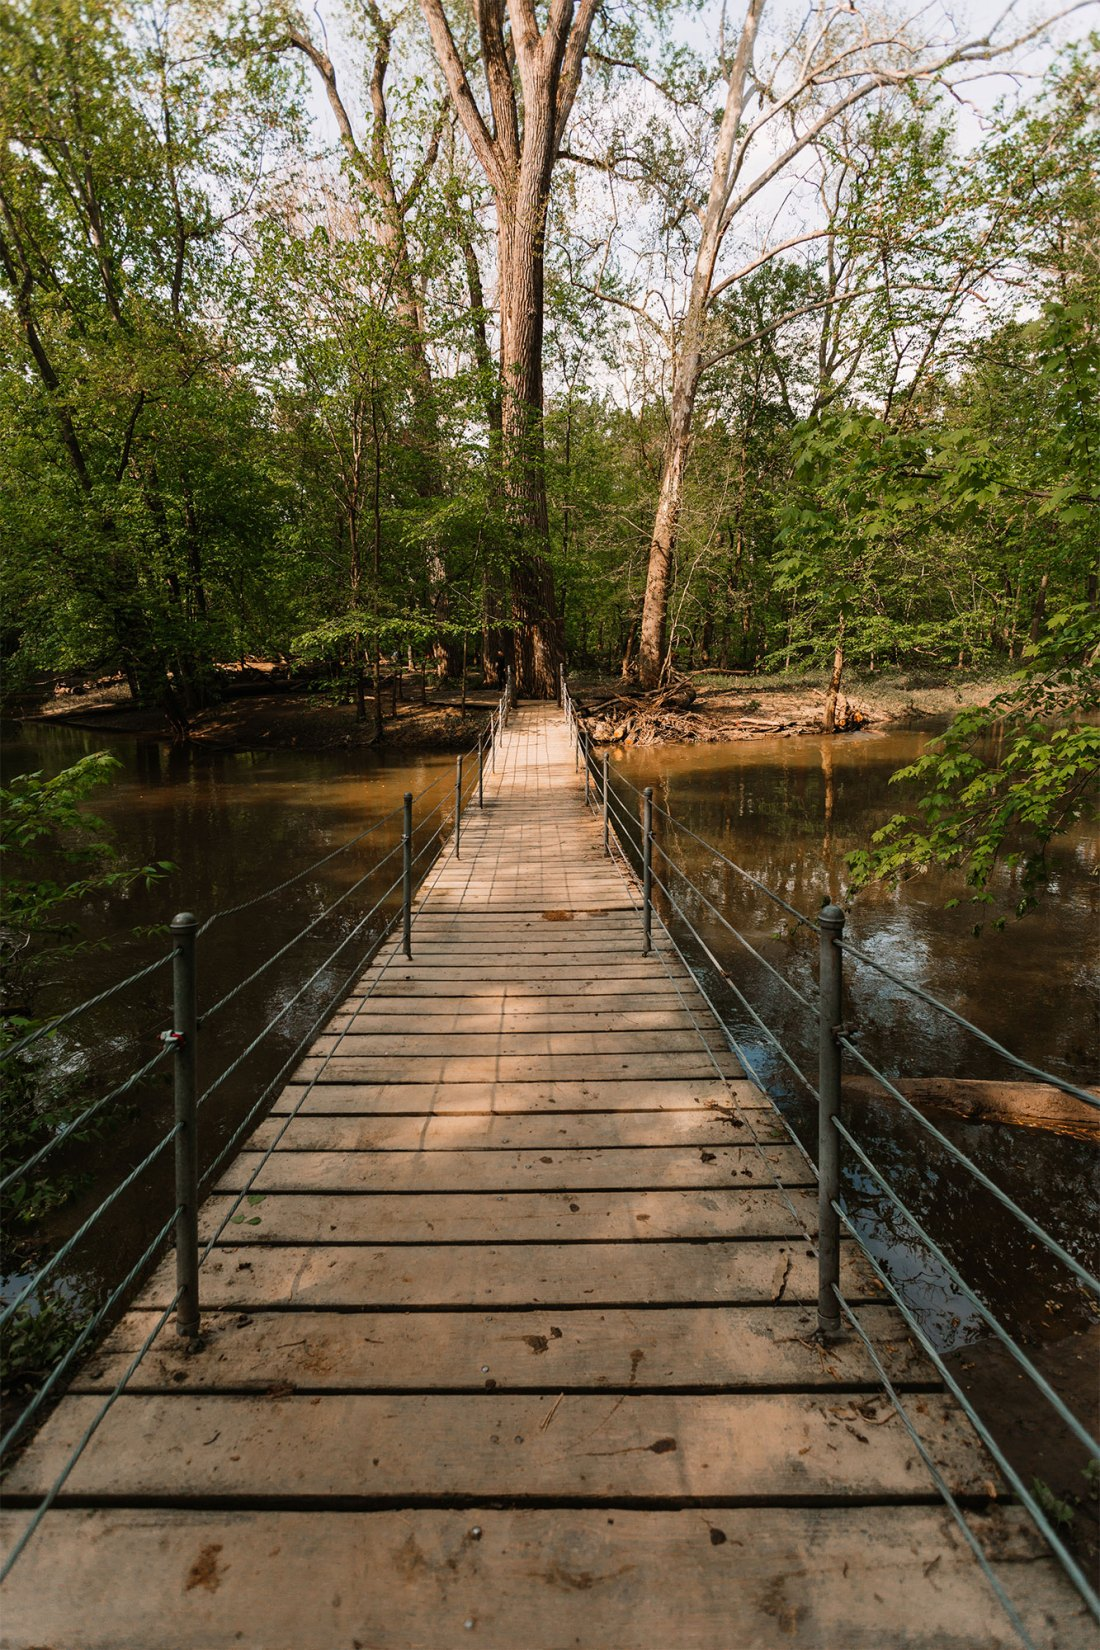 Swinging bridge in Swan Creek Preserve part of Toledo, Ohio Metropark